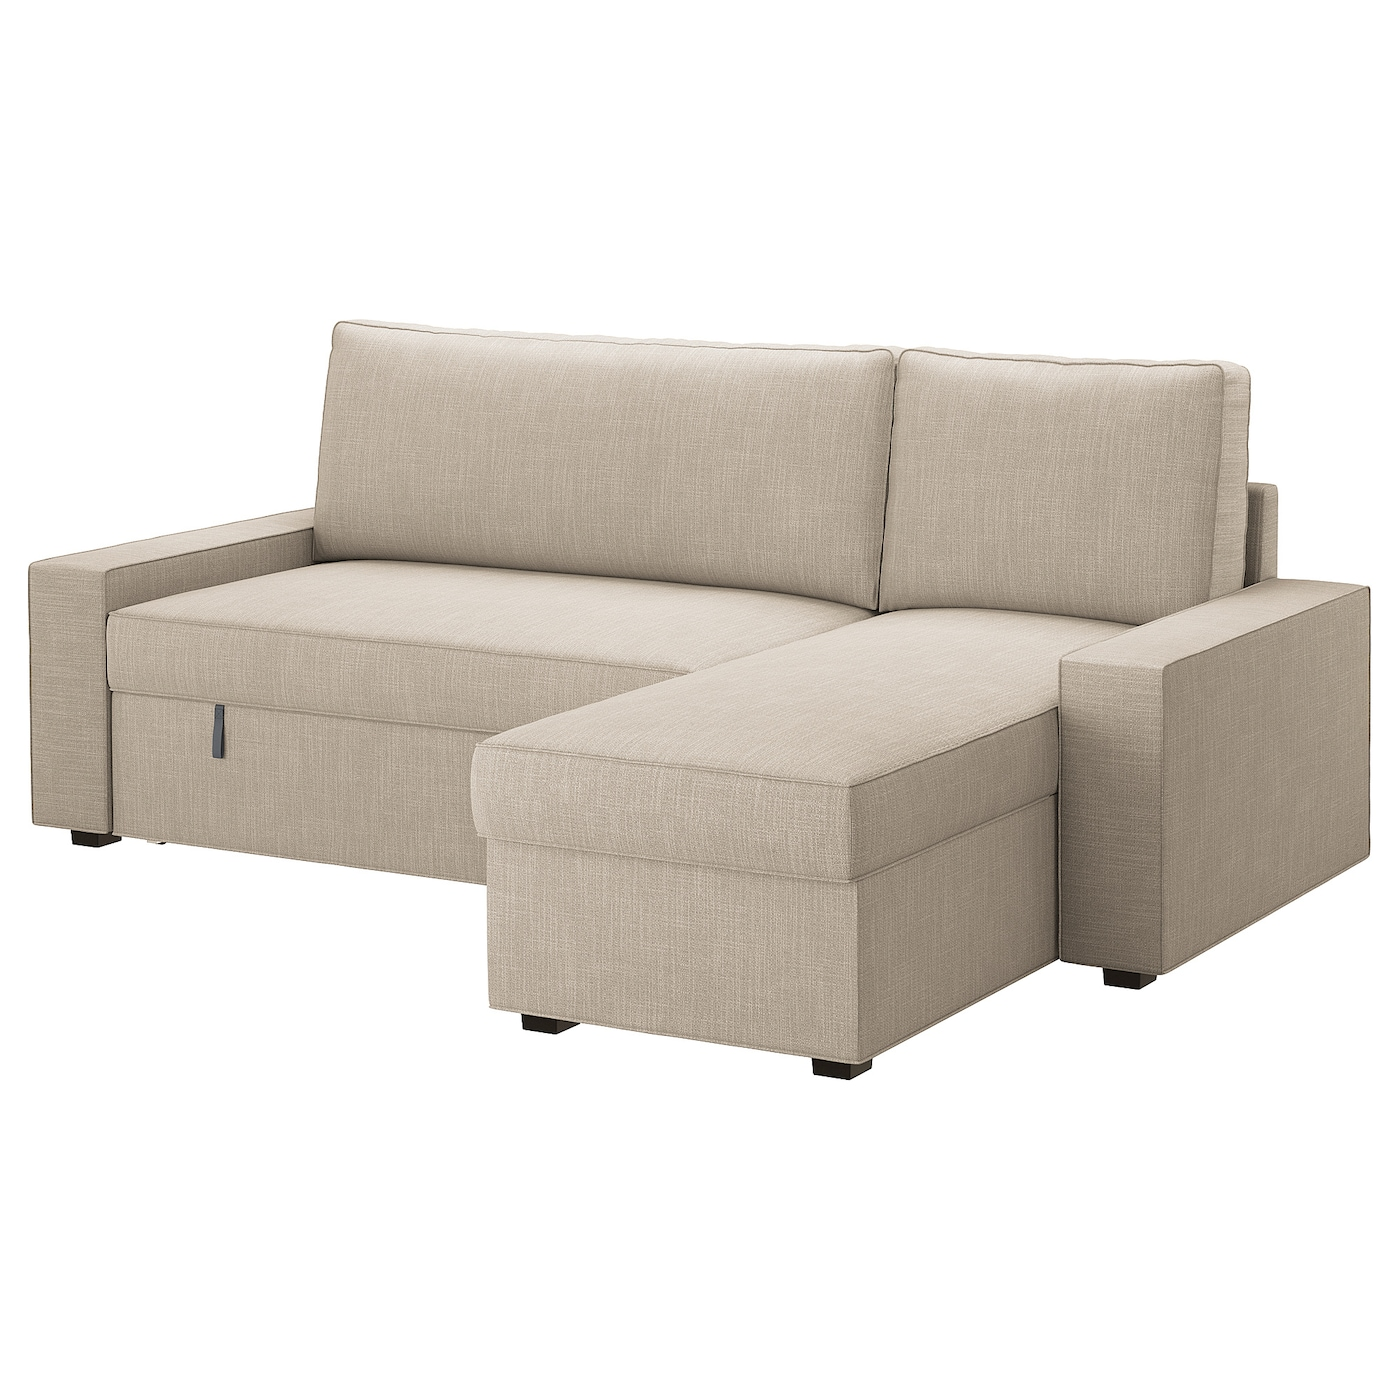 Vilasund sofa bed with chaise longue hillared beige ikea for Chaise longue bed